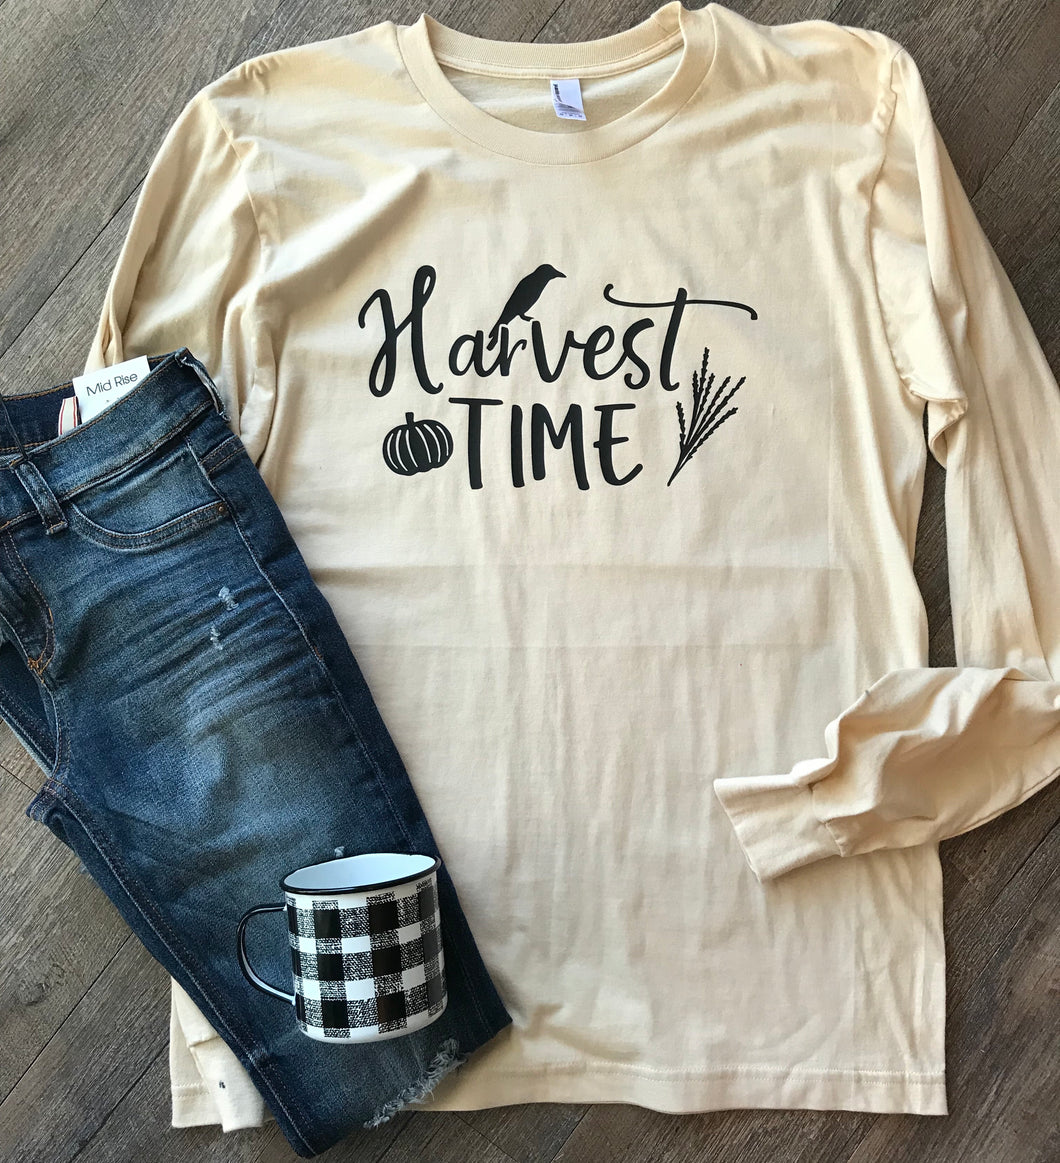 Harvest time perfect for fall cream color graphic tshirt or long sleeve - Mavictoria Designs Hot Press Express